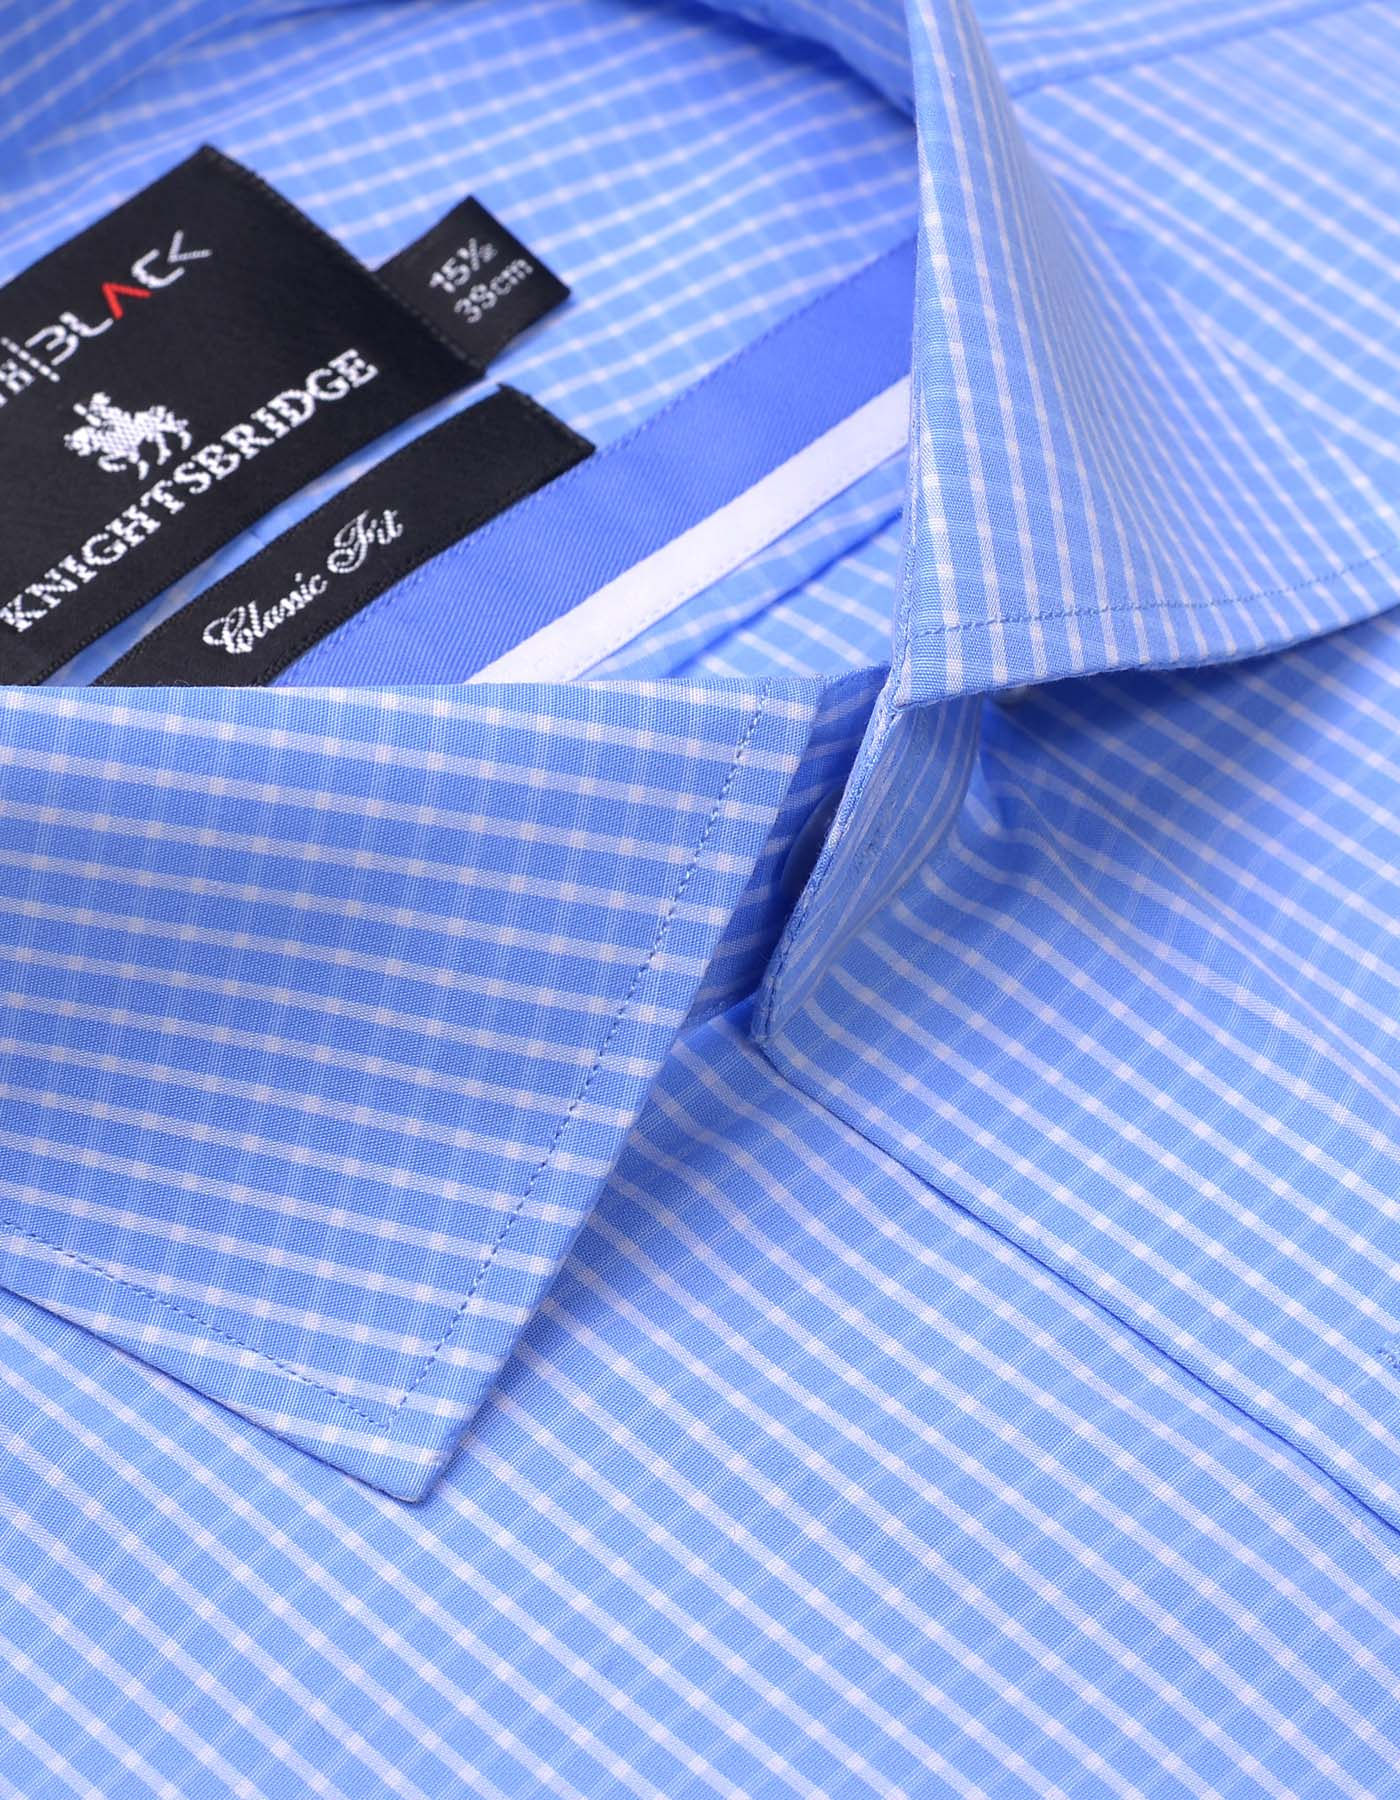 SKY BLUE AND WHITE CHECK CLASSIC FIT DRESS SHIRT